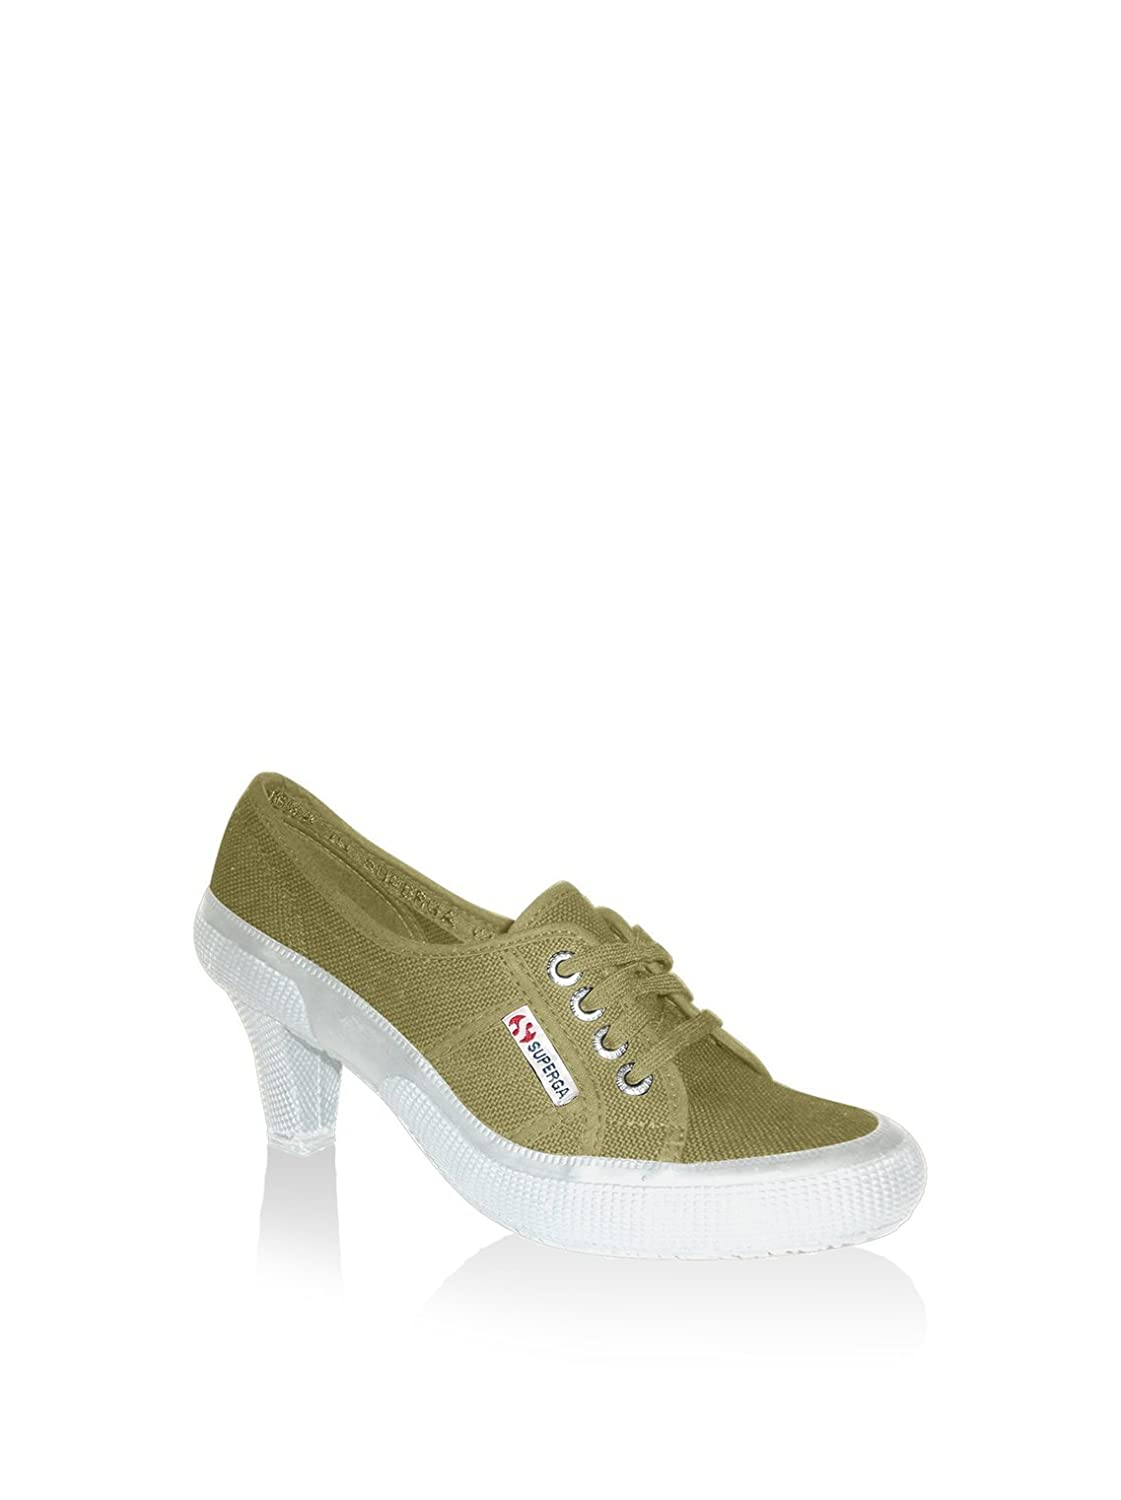 7af344d00b0 Superga LADY SHOES 2148-COTW Heritage WOMAN  Amazon.co.uk  Shoes   Bags